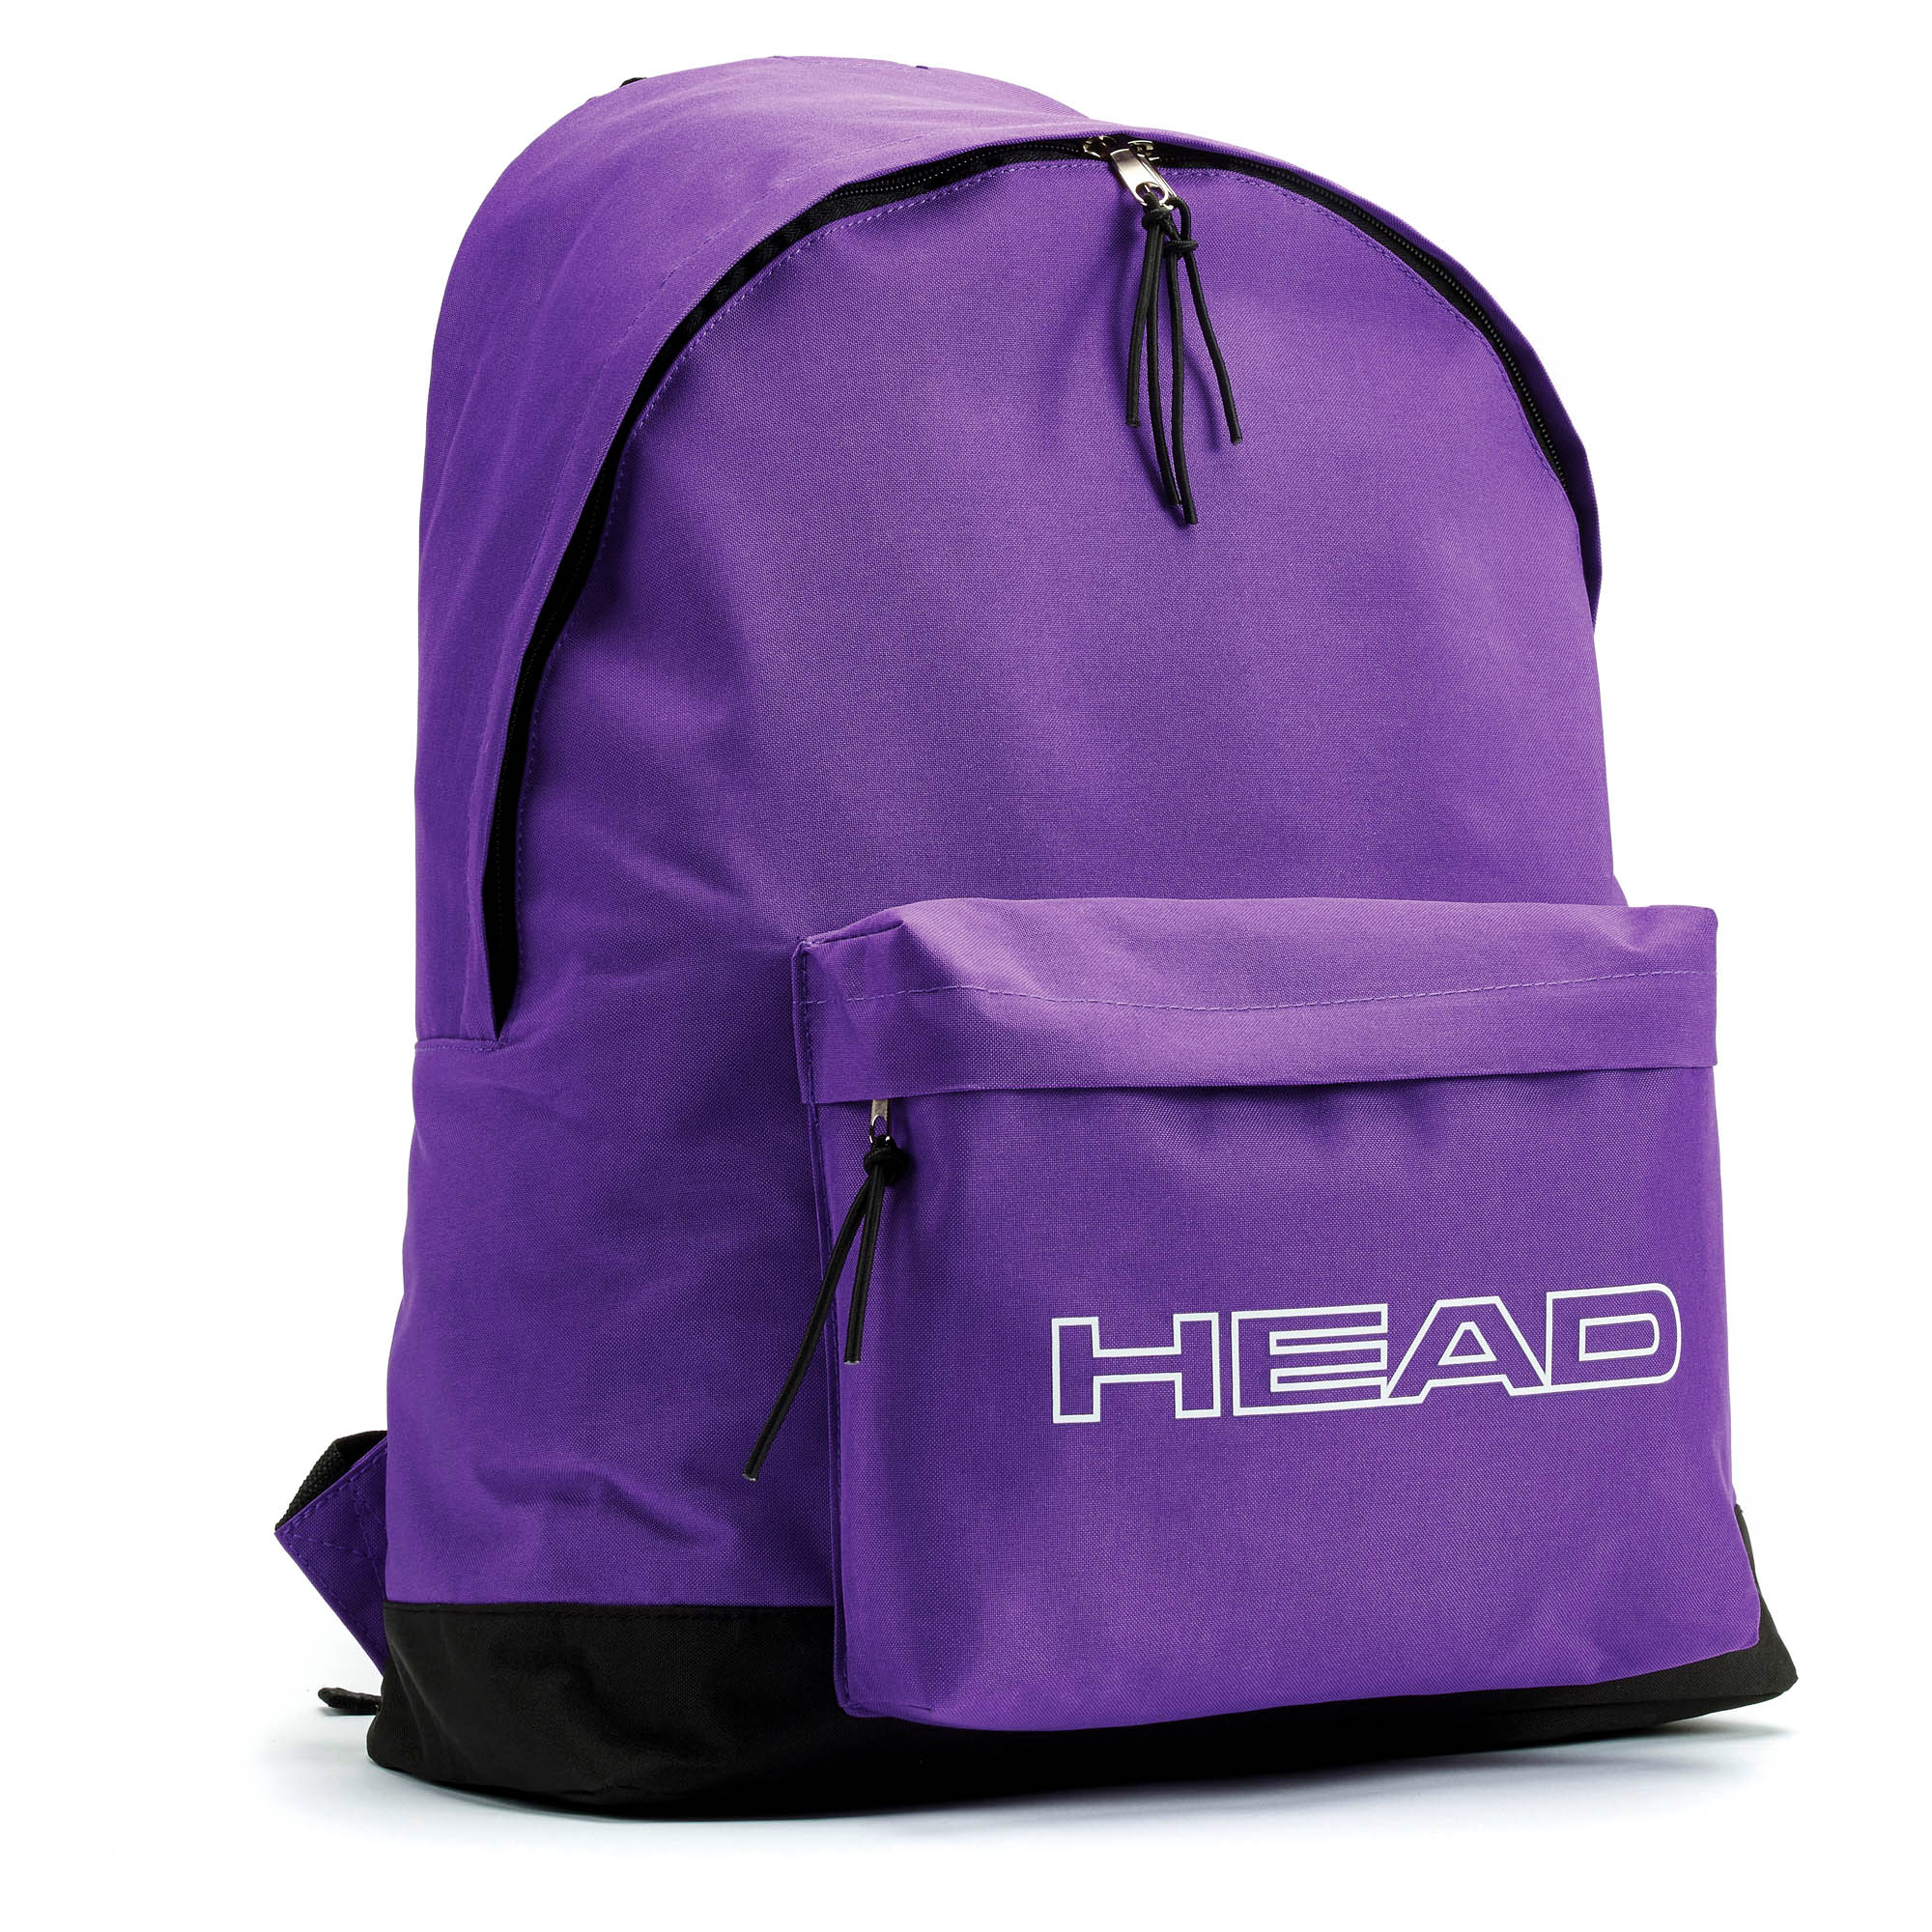 Head Nyx Backpack - Purple